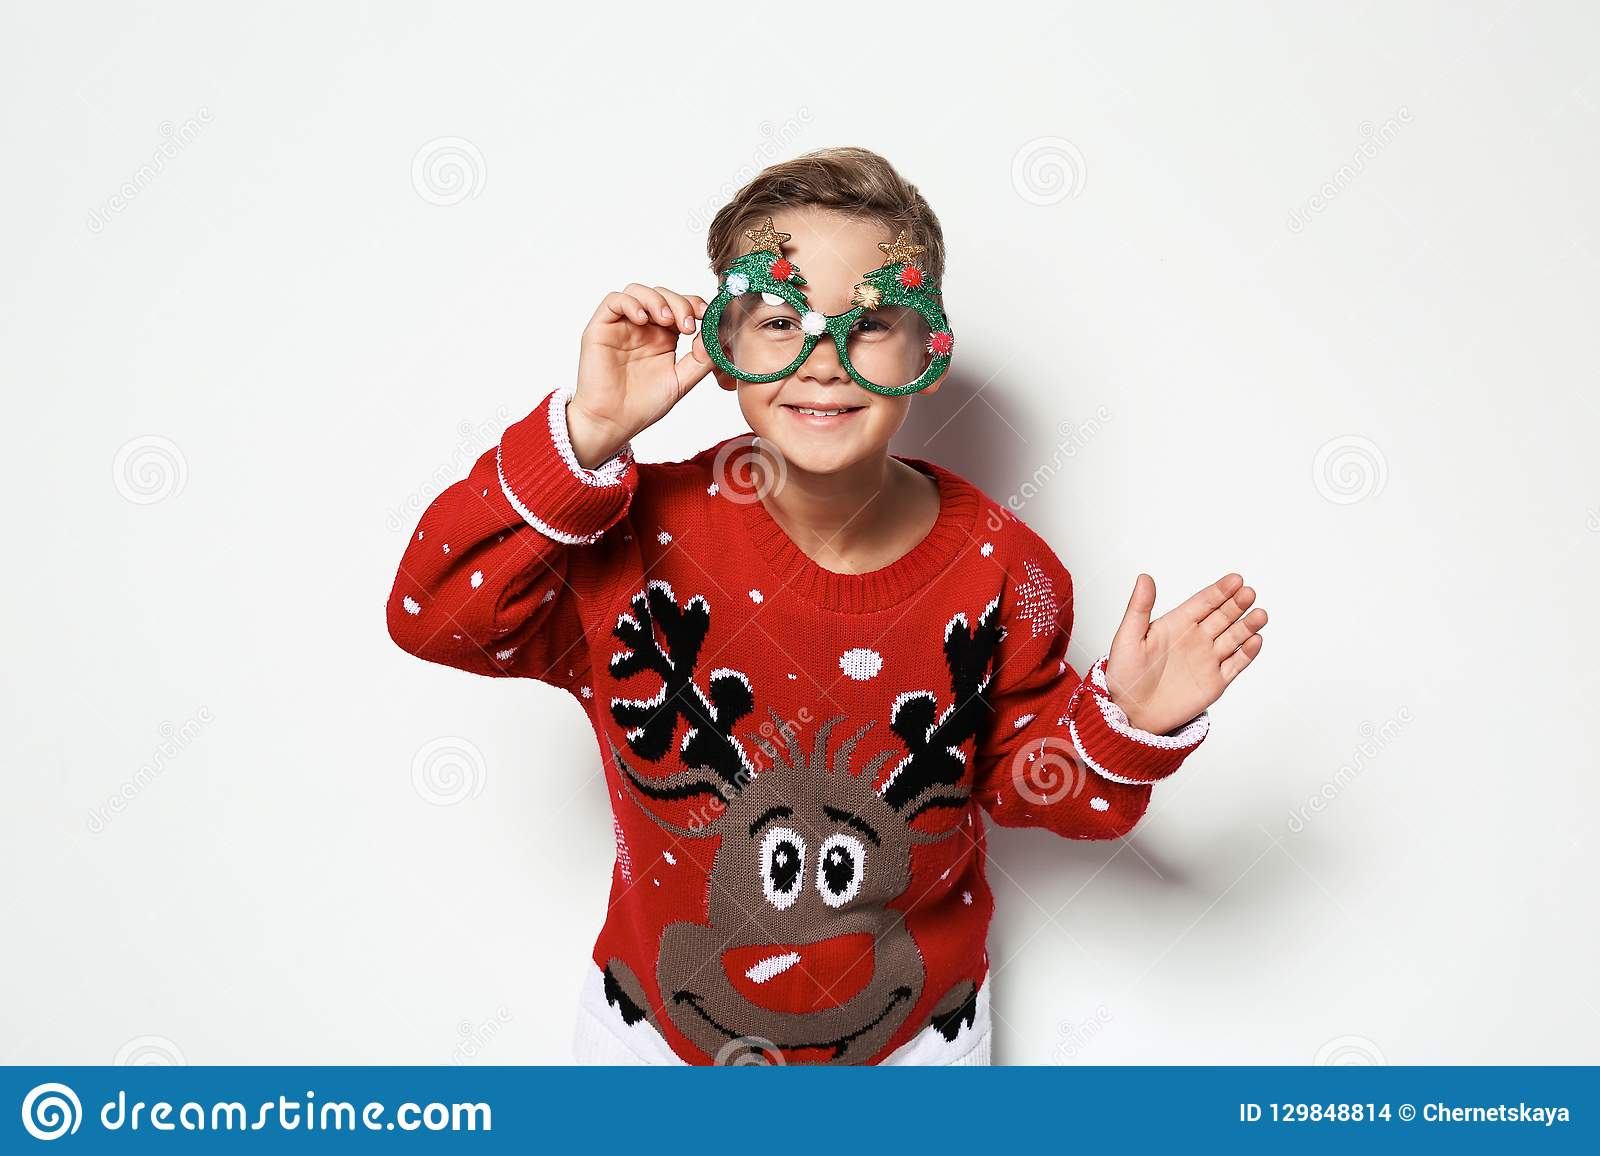 Cute Little Boy In Christmas Sweater With Party Glasses Stock Photo